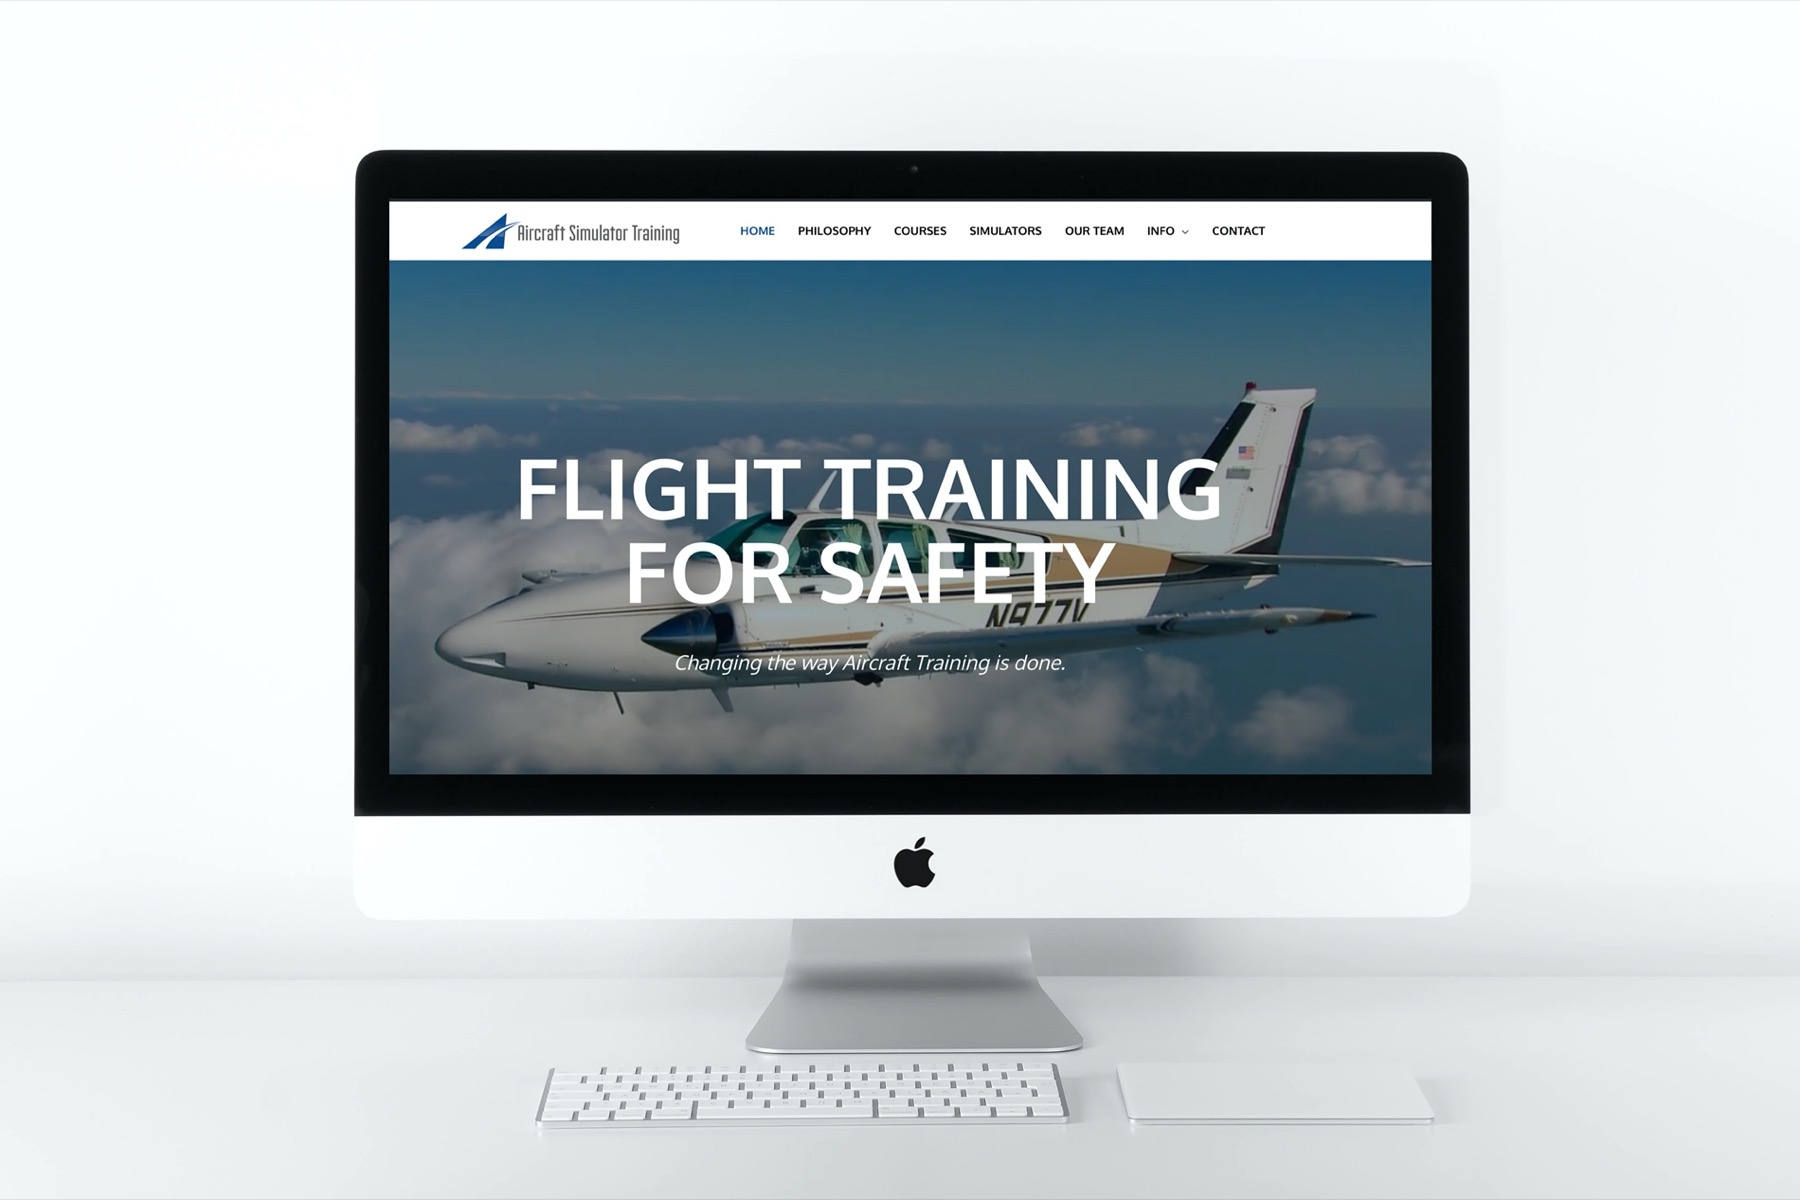 Aircraft Simulator Training Website Design - Desktop